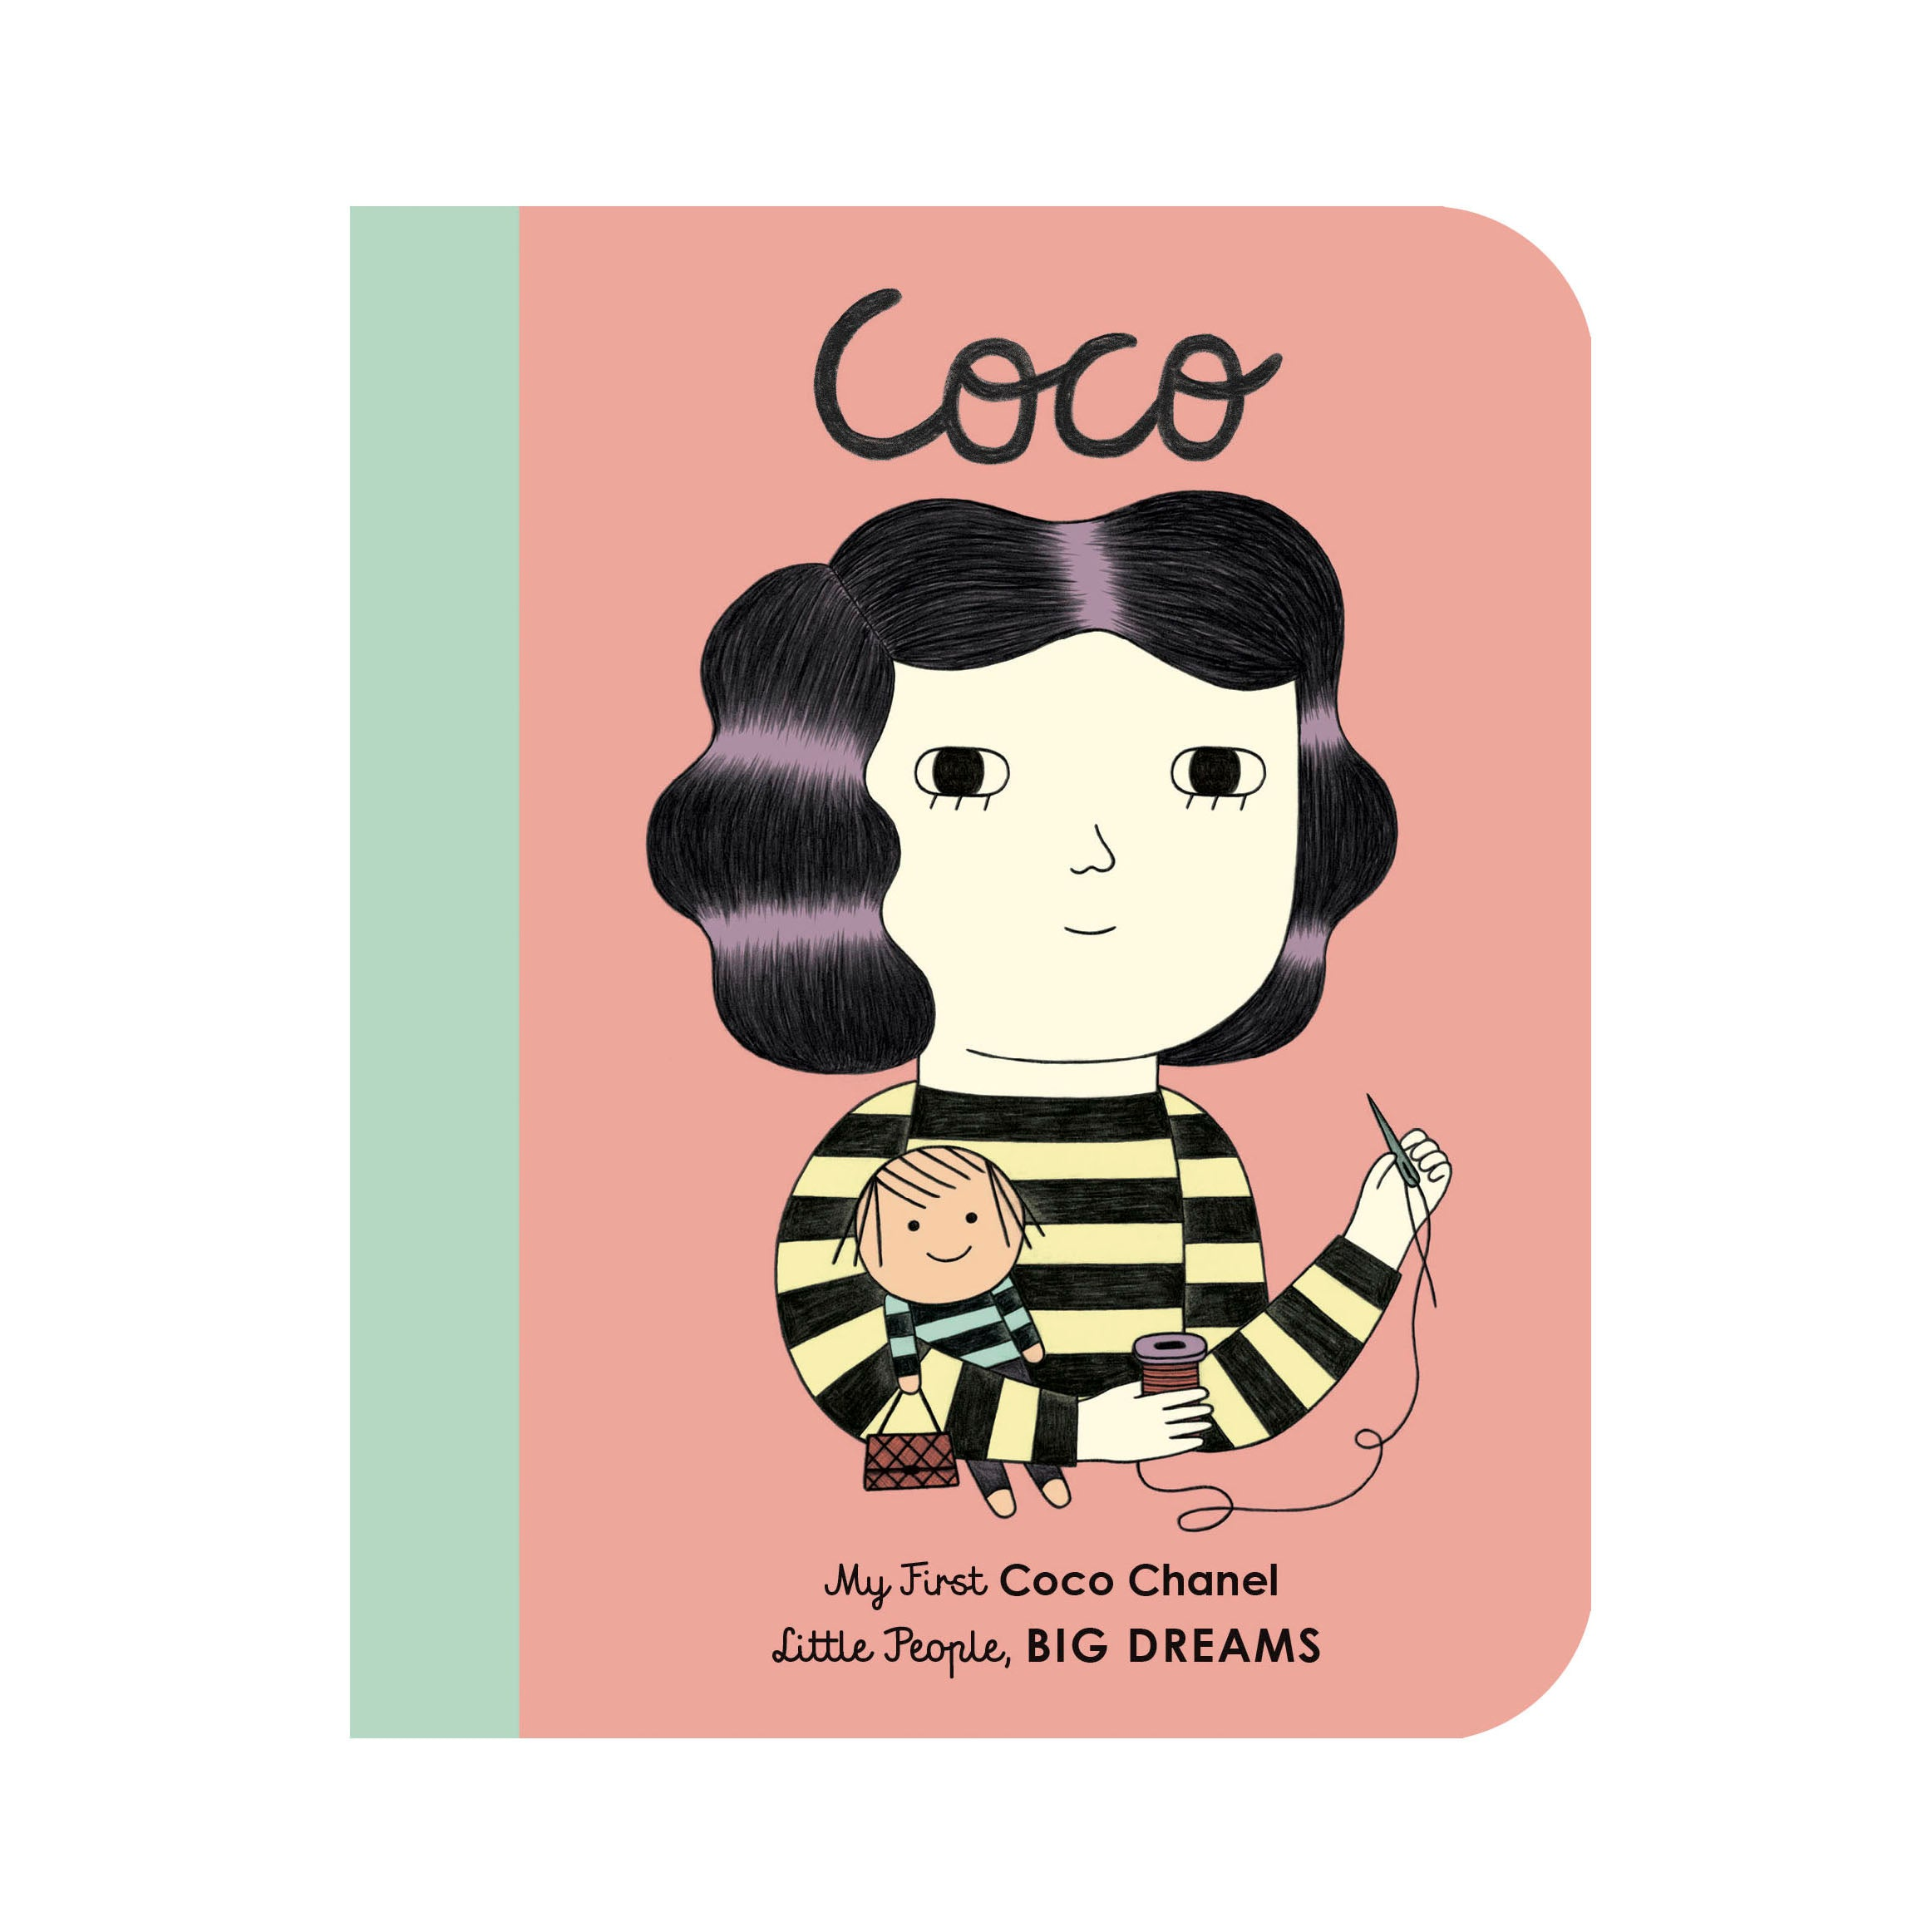 Coco: My First Coco Chanel board book by Little People, Big Dreams